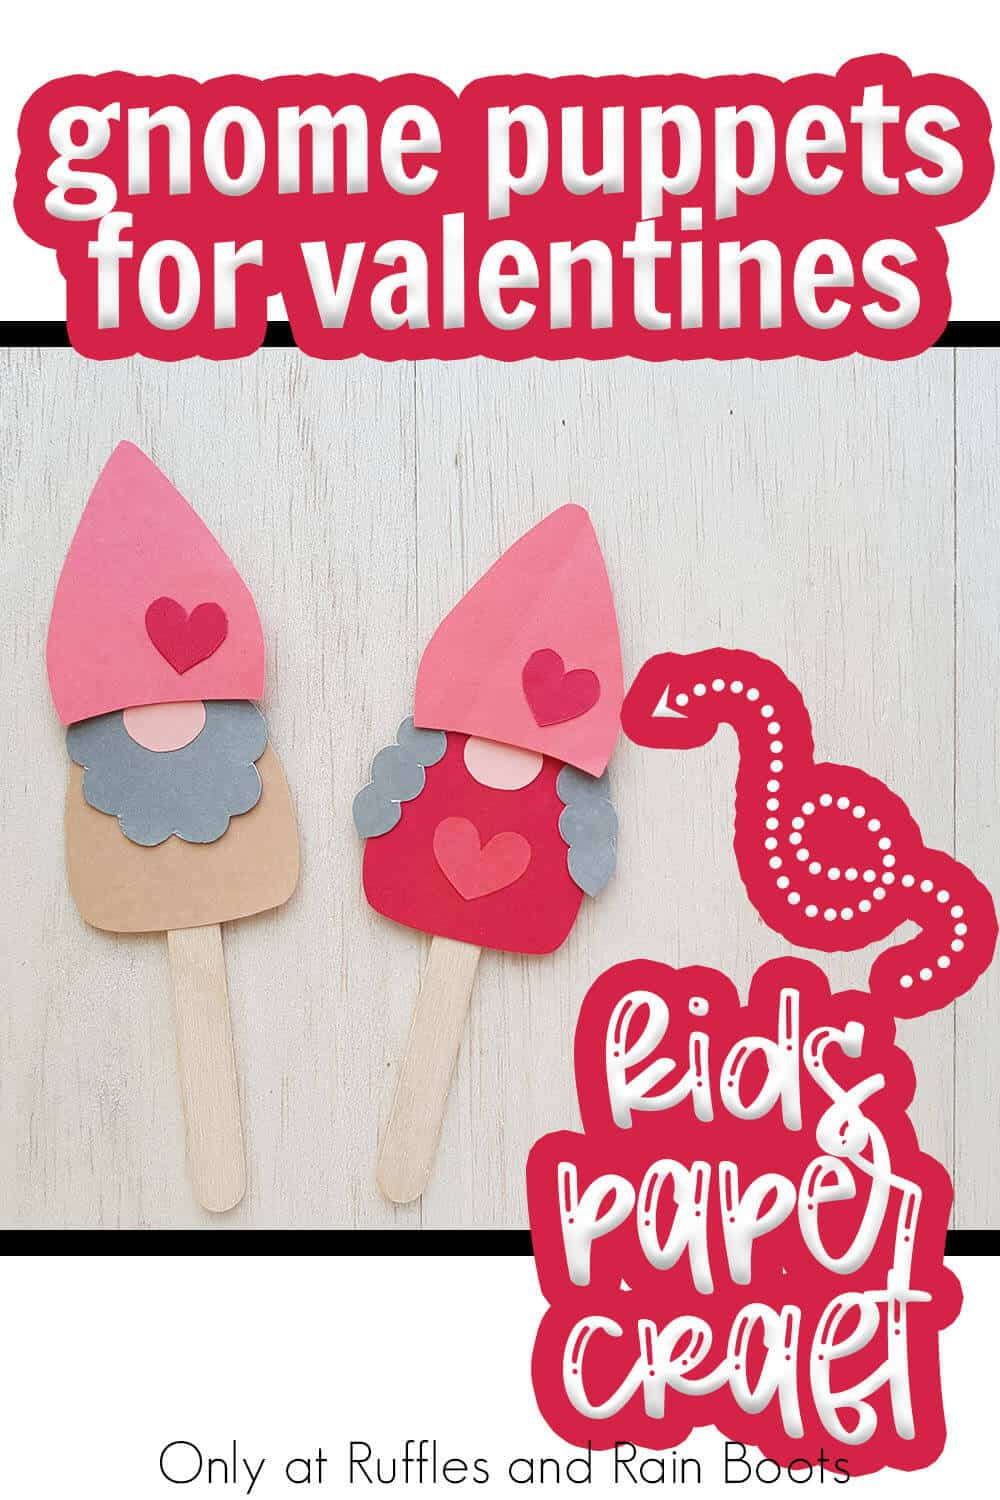 paper puppet gnome kids craft for valentines with text which reads gnome puppets for valentines kids paper craft